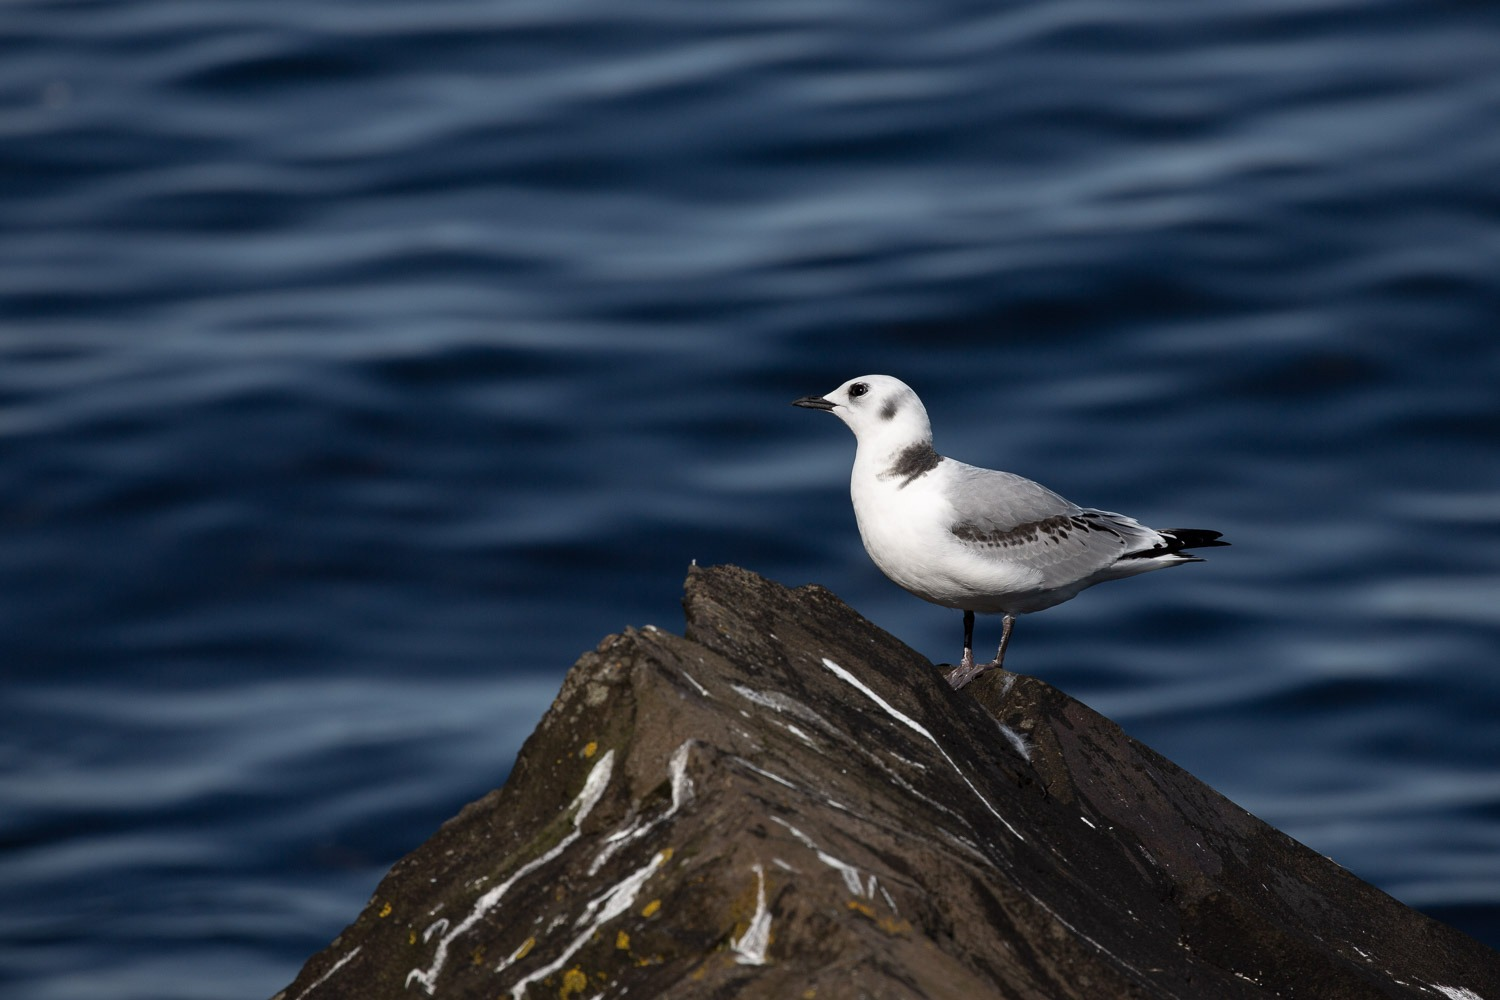 a kittiwake sitting on a rock with deep blue sea behind